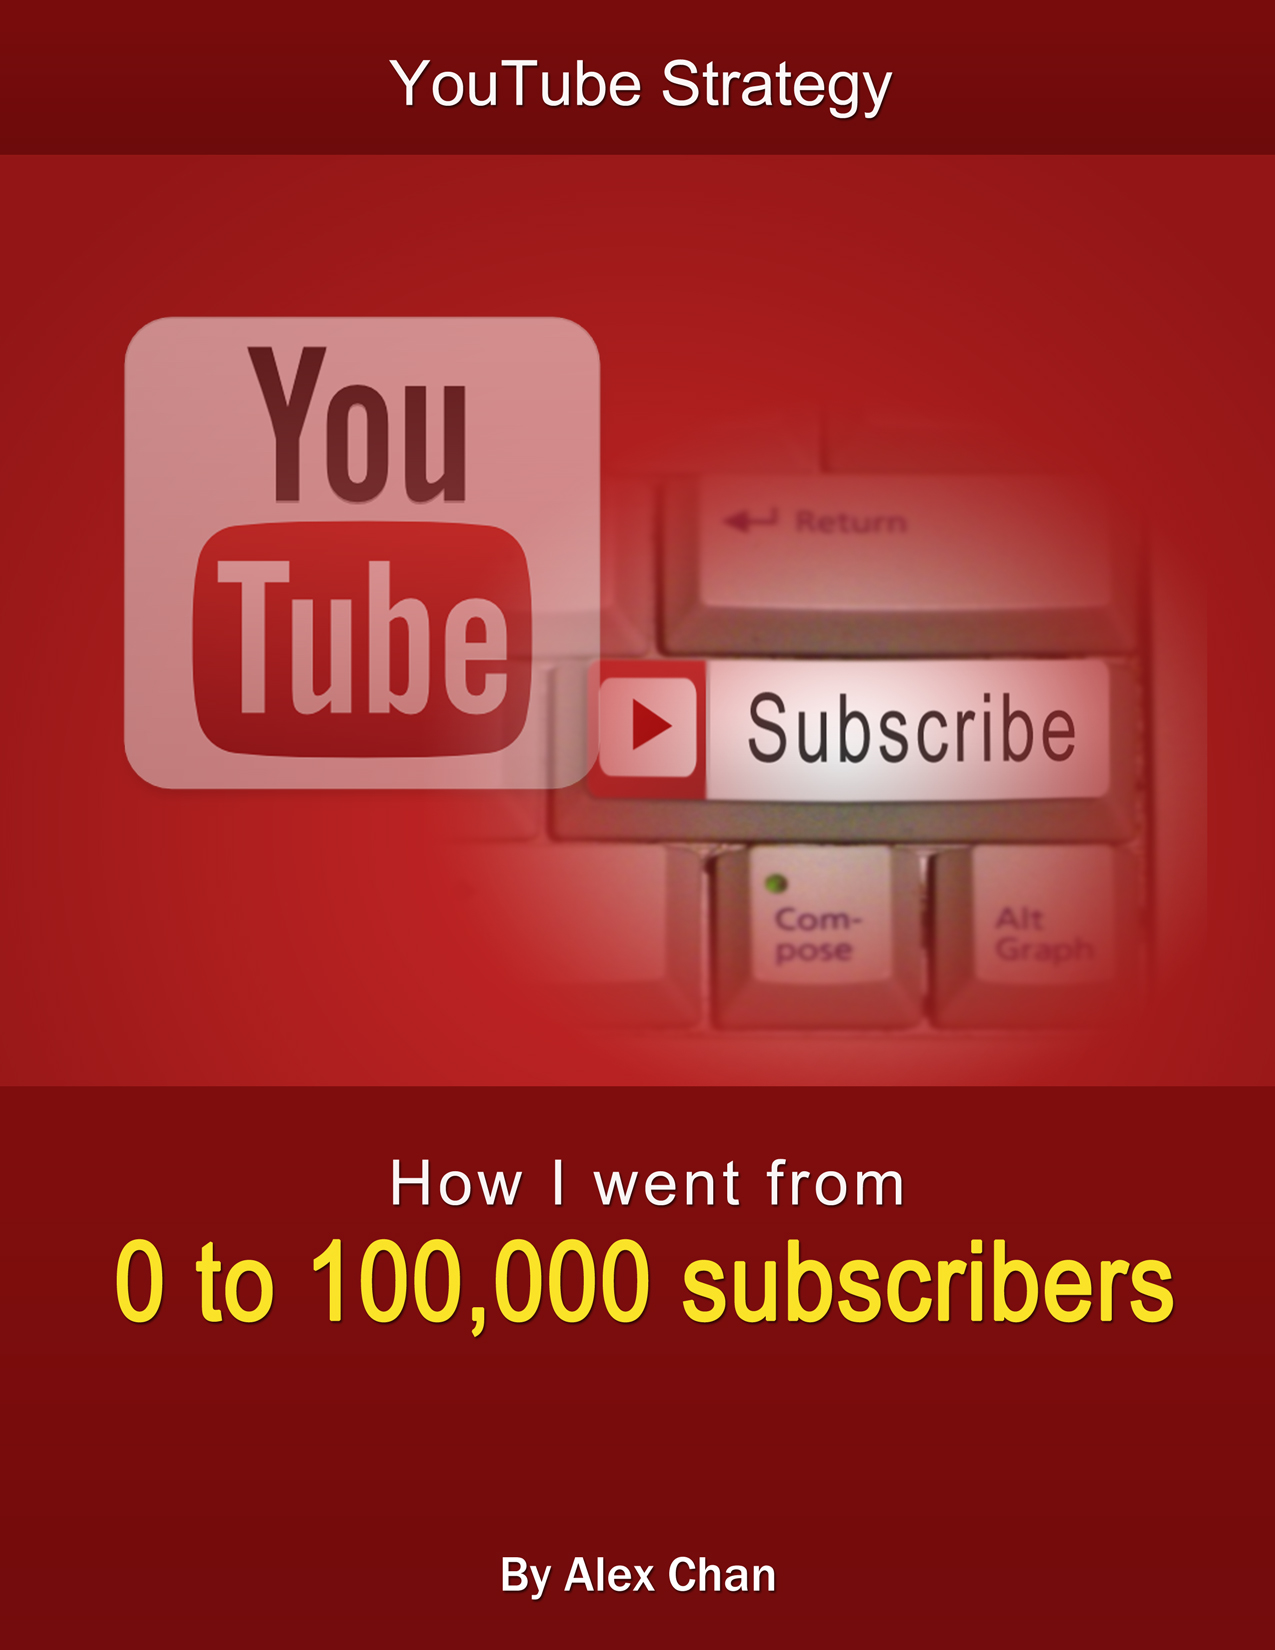 show you how I went from 0 to 100,000 subscribers (Guide) YouTube Strategy (Book)